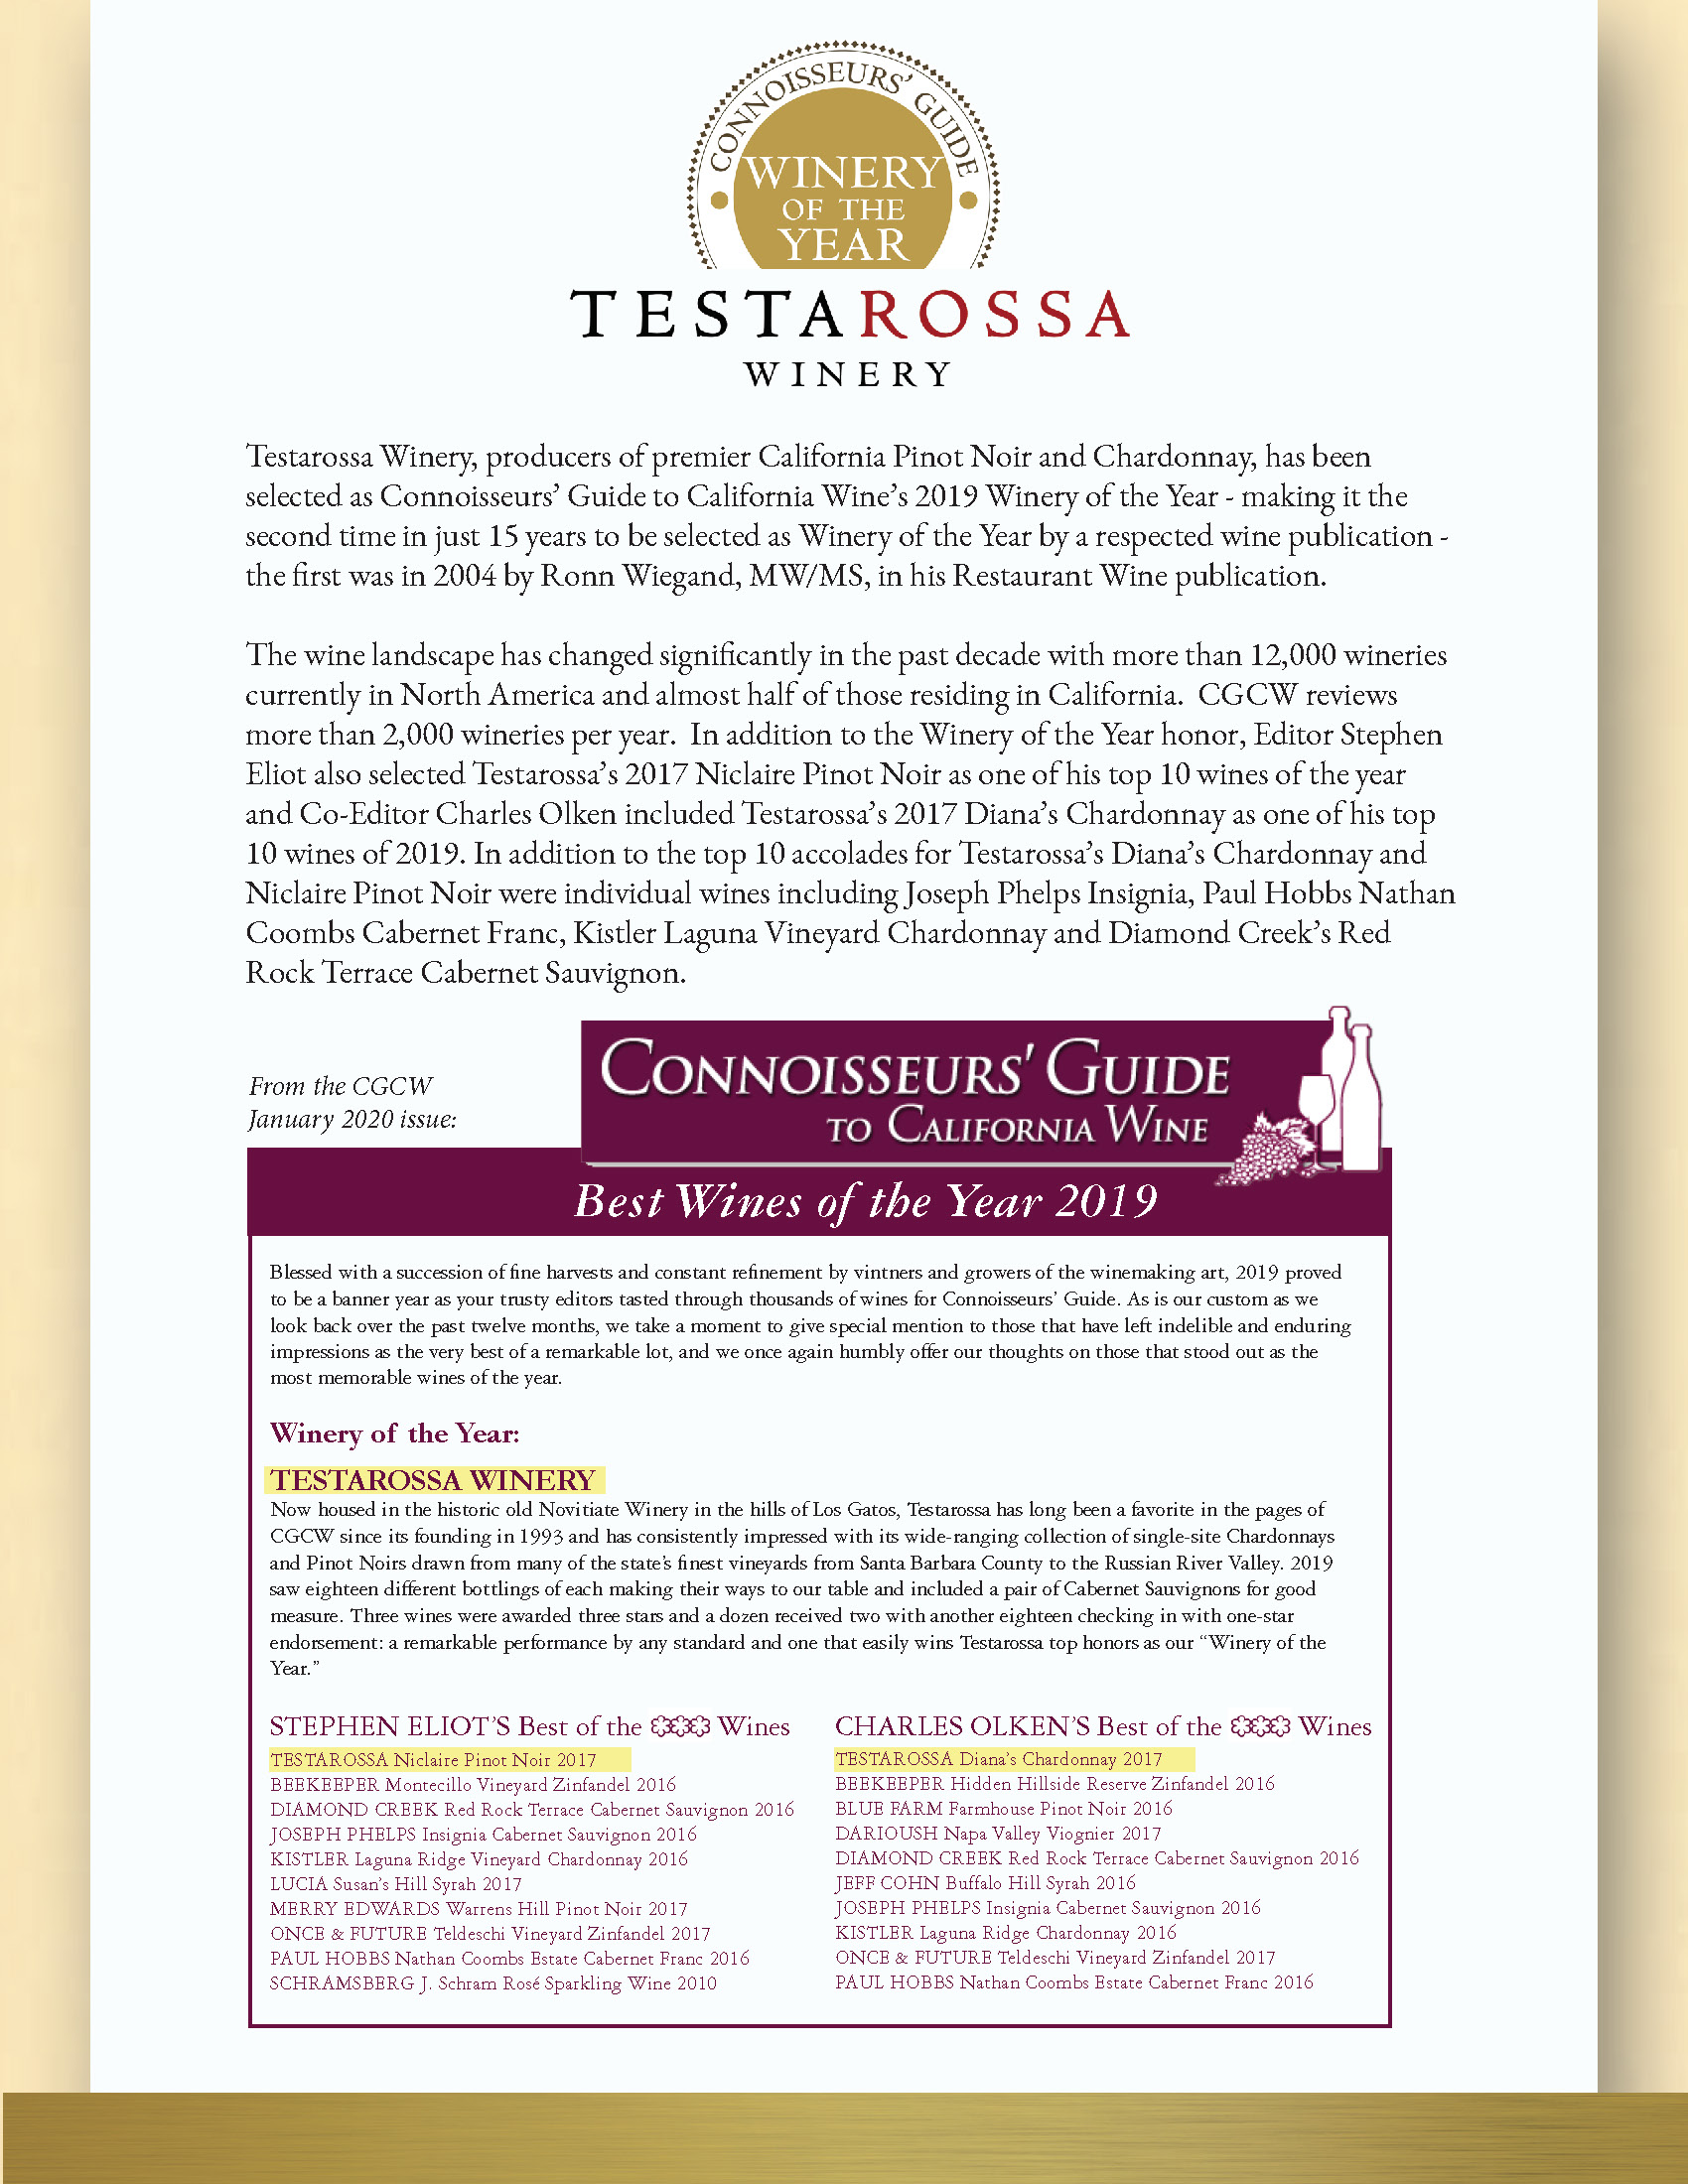 Connoisseurs' Guide Winery of the Year